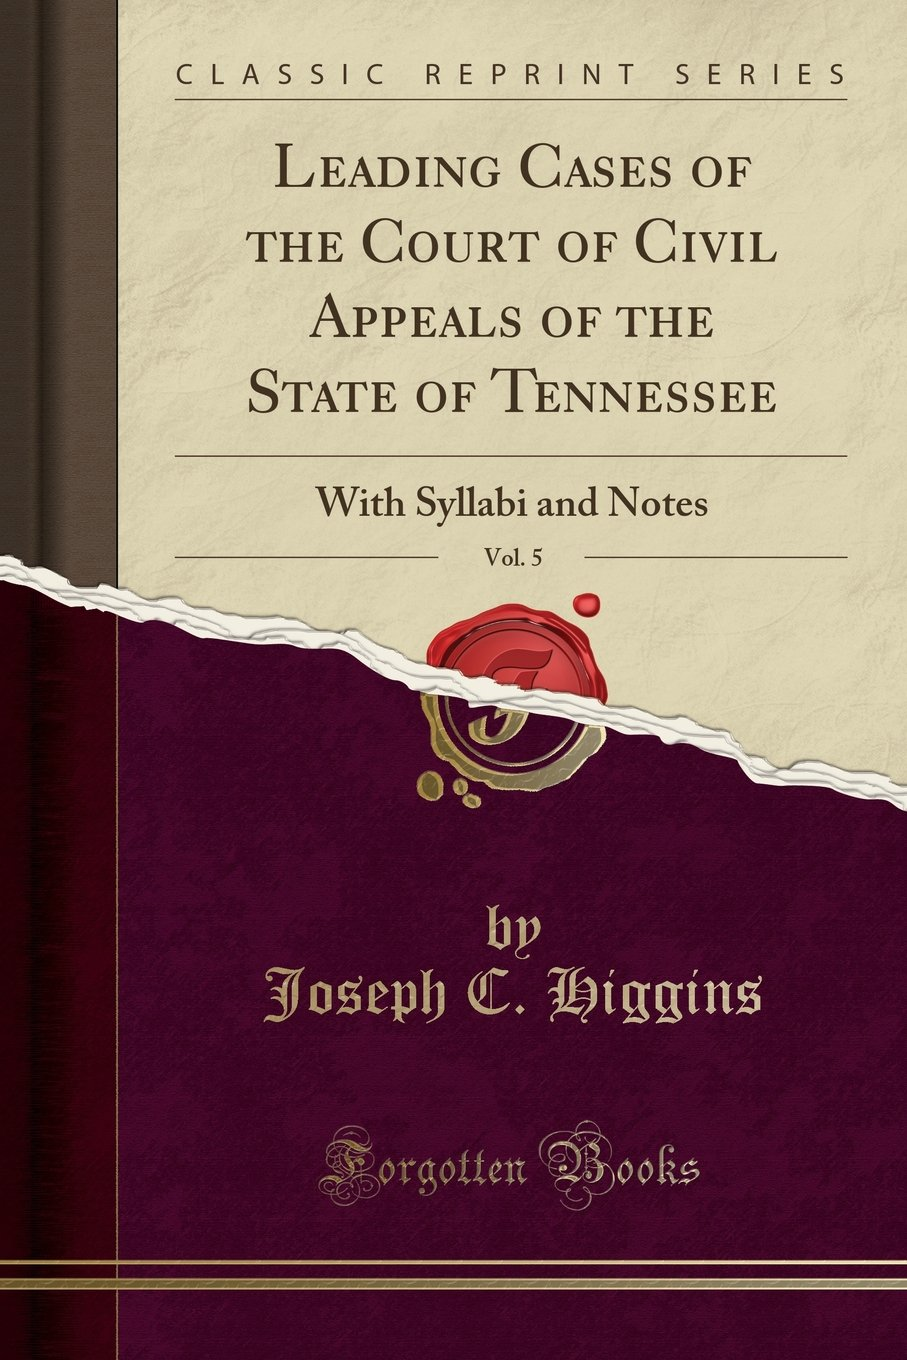 Read Online Leading Cases of the Court of Civil Appeals of the State of Tennessee, Vol. 5: With Syllabi and Notes (Classic Reprint) PDF